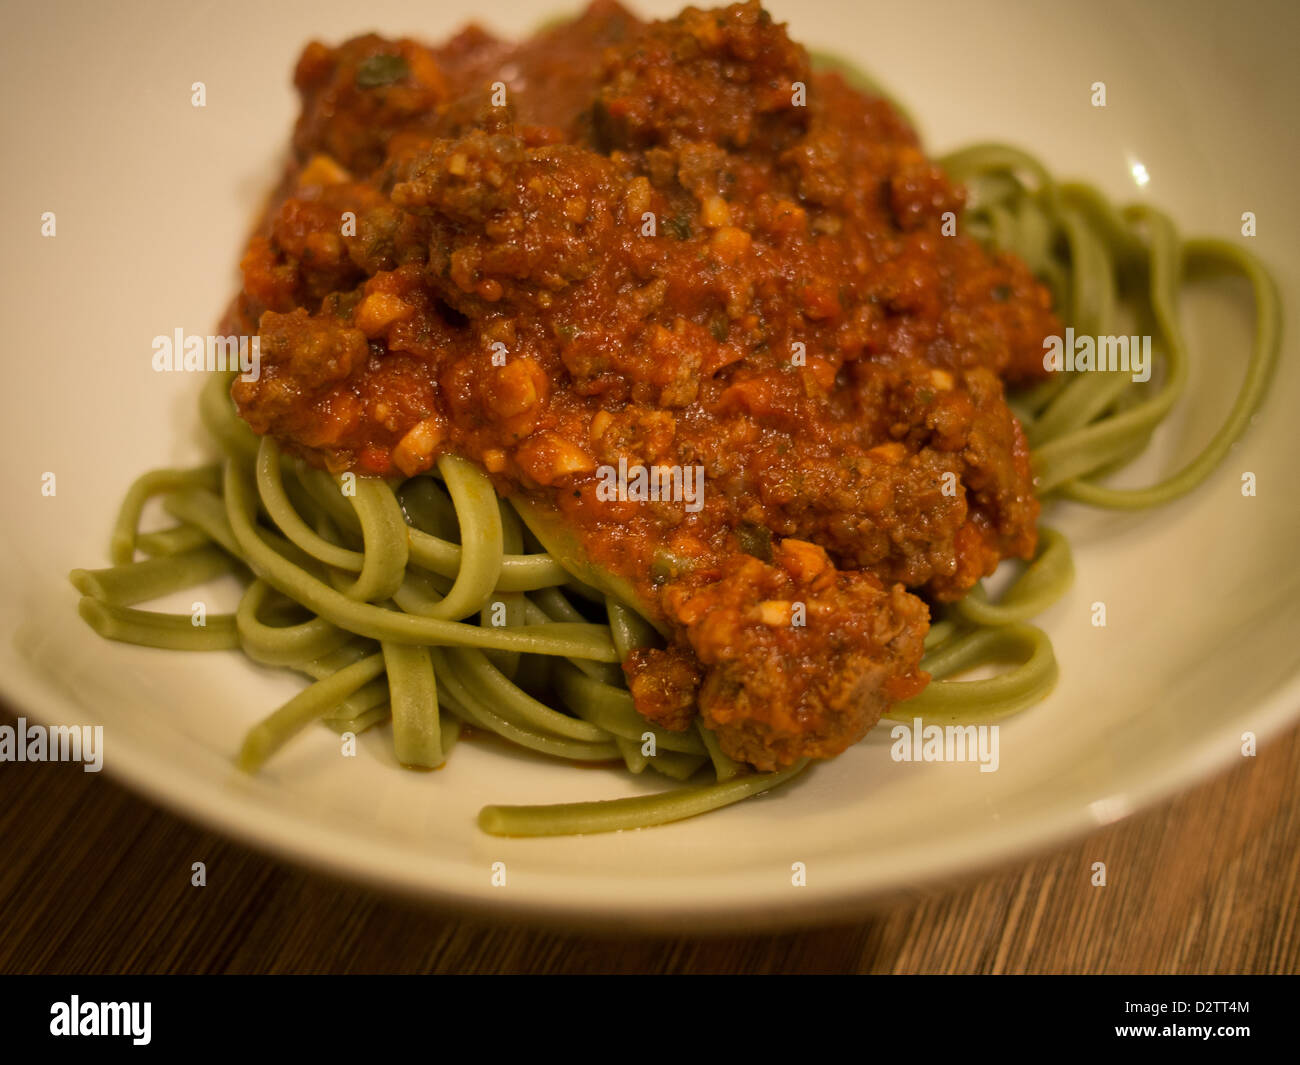 Green spinach spaghetti pasta and meat sauce - Stock Image